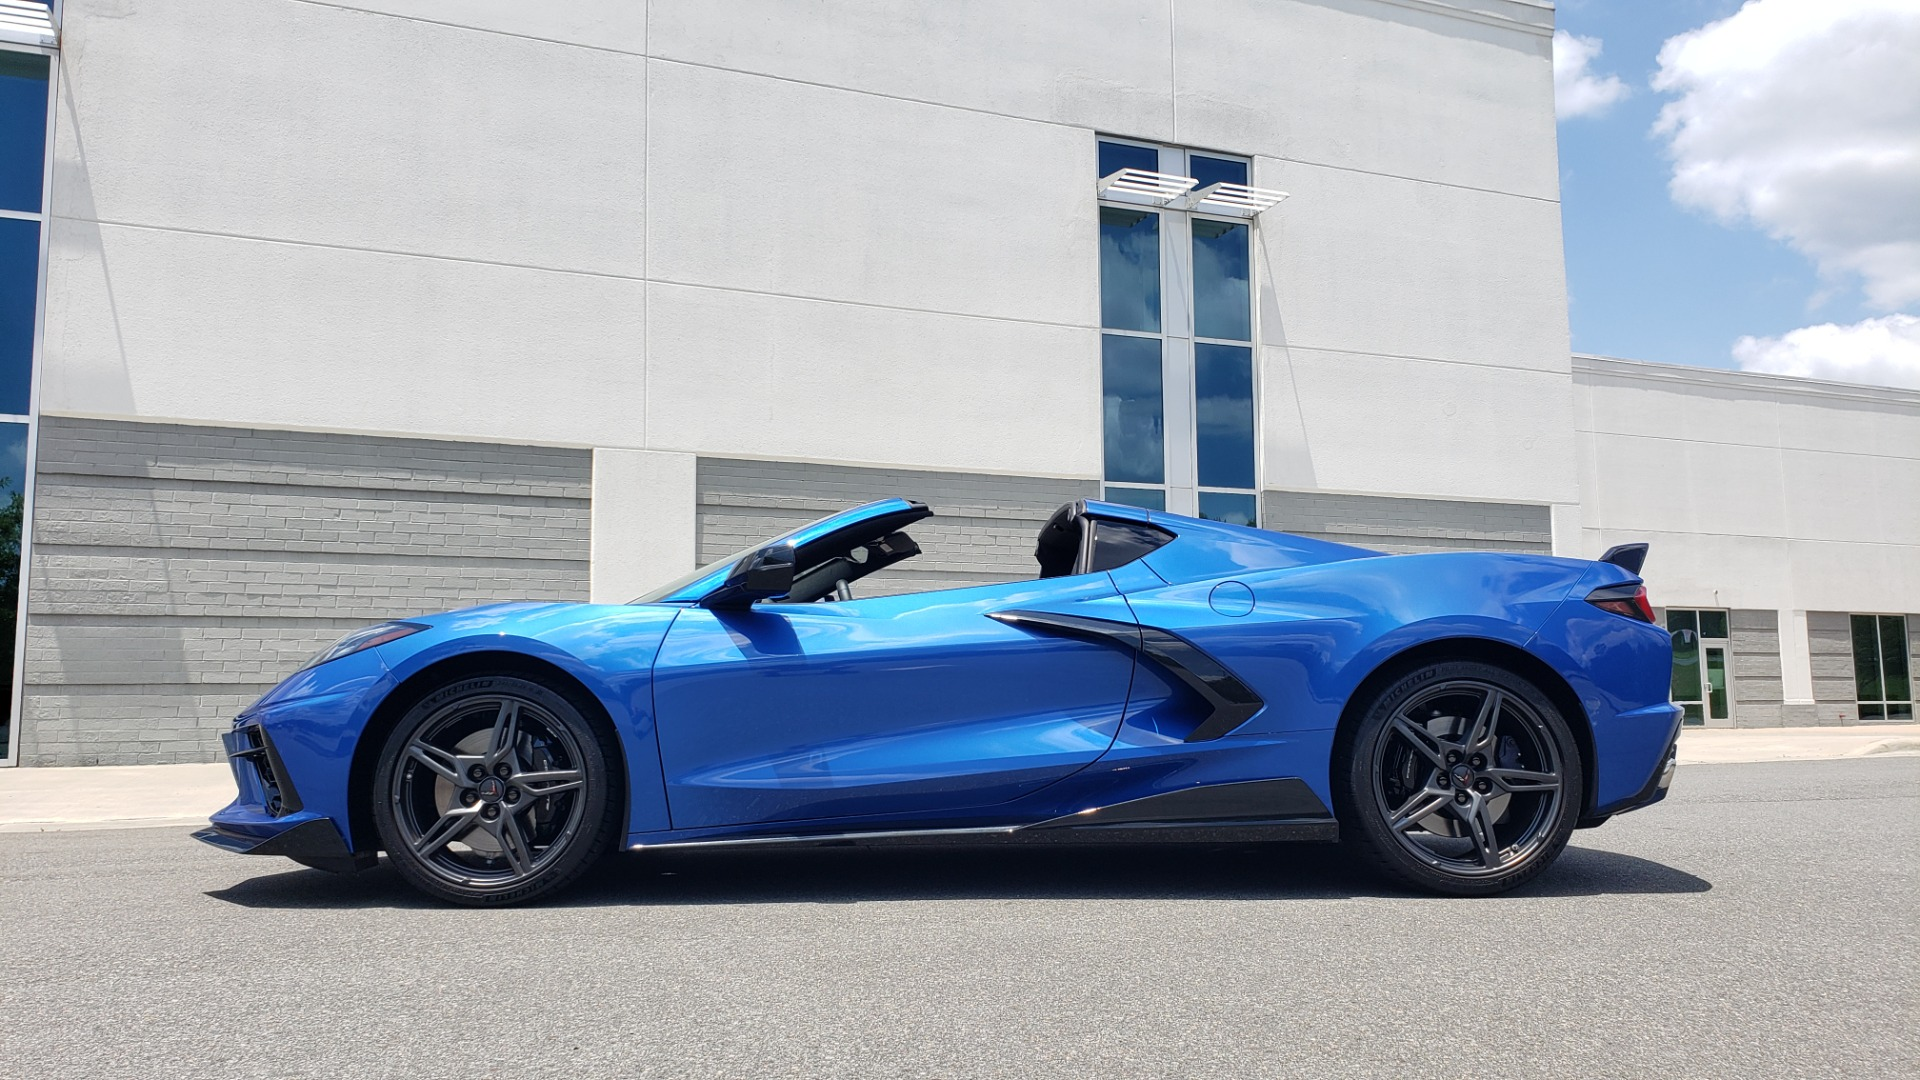 Used 2020 Chevrolet CORVETTE C8 STINGRAY COUPE 2LT / PERF & Z51 PKG / NAV / BOSE / 8-SPD AUTO / REARVIEW for sale Sold at Formula Imports in Charlotte NC 28227 13